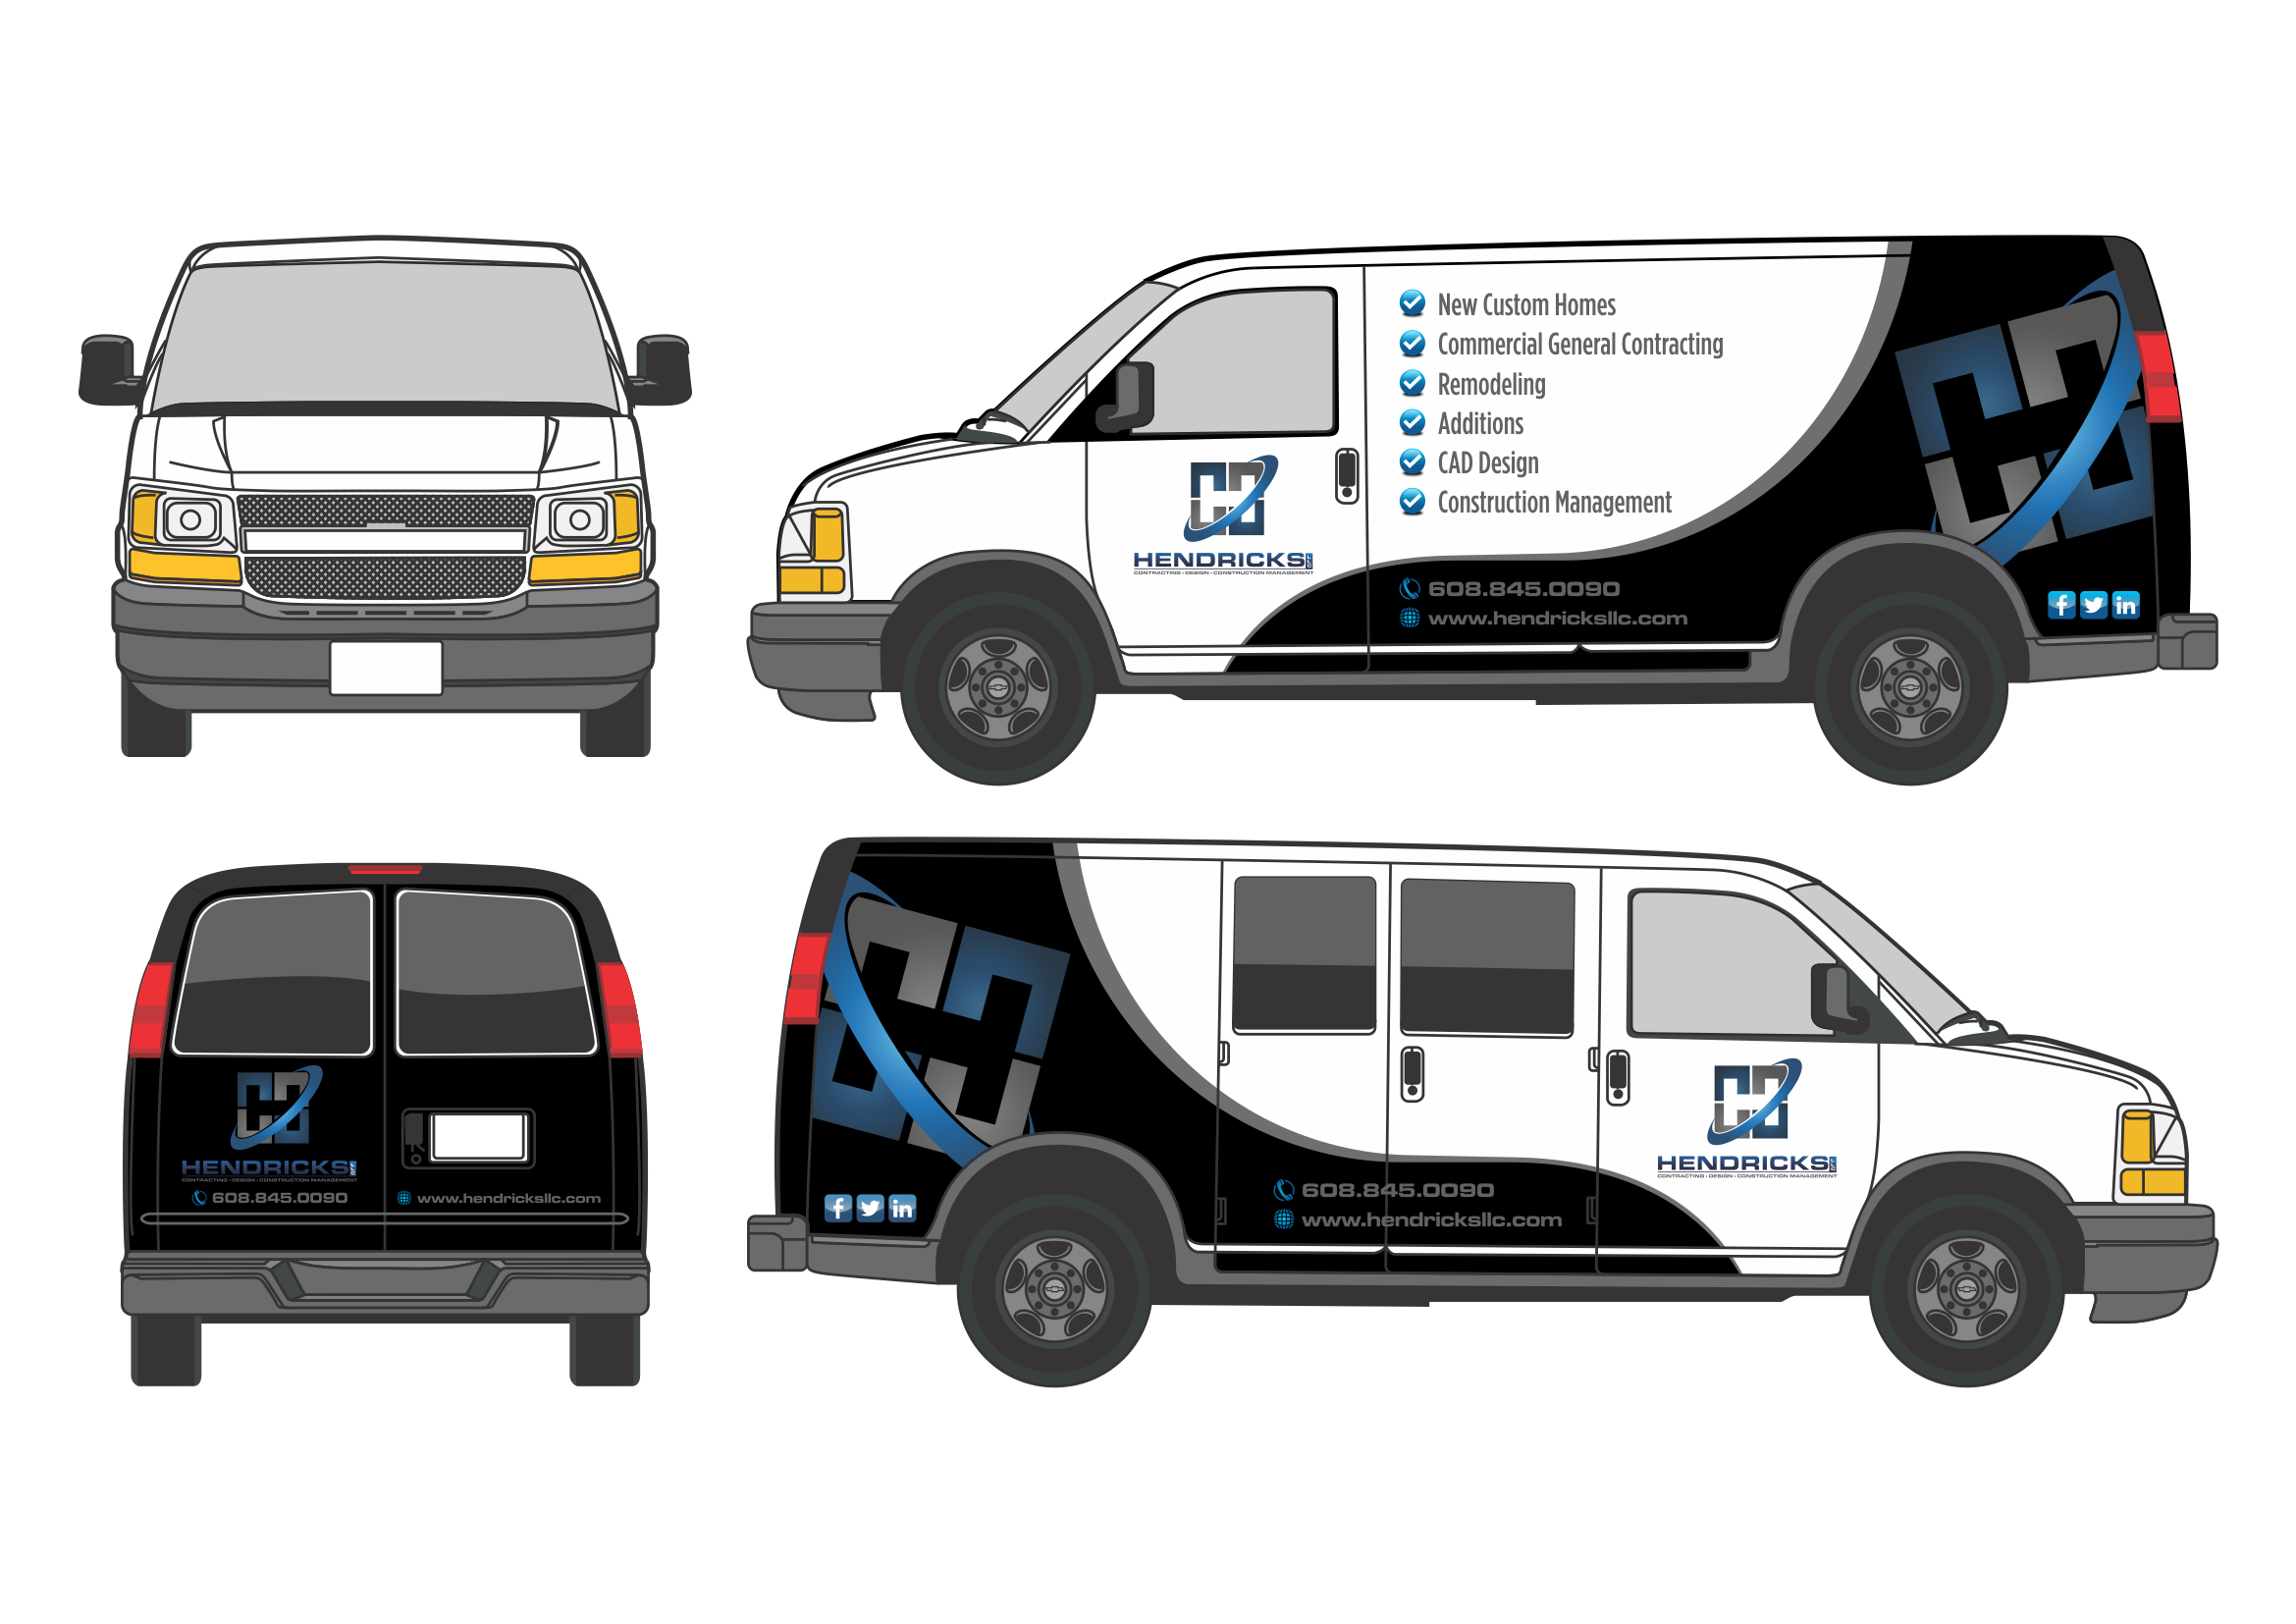 Custom High-Res Automotive Wrap Design For Hendricks Construction Vehicles - Construction